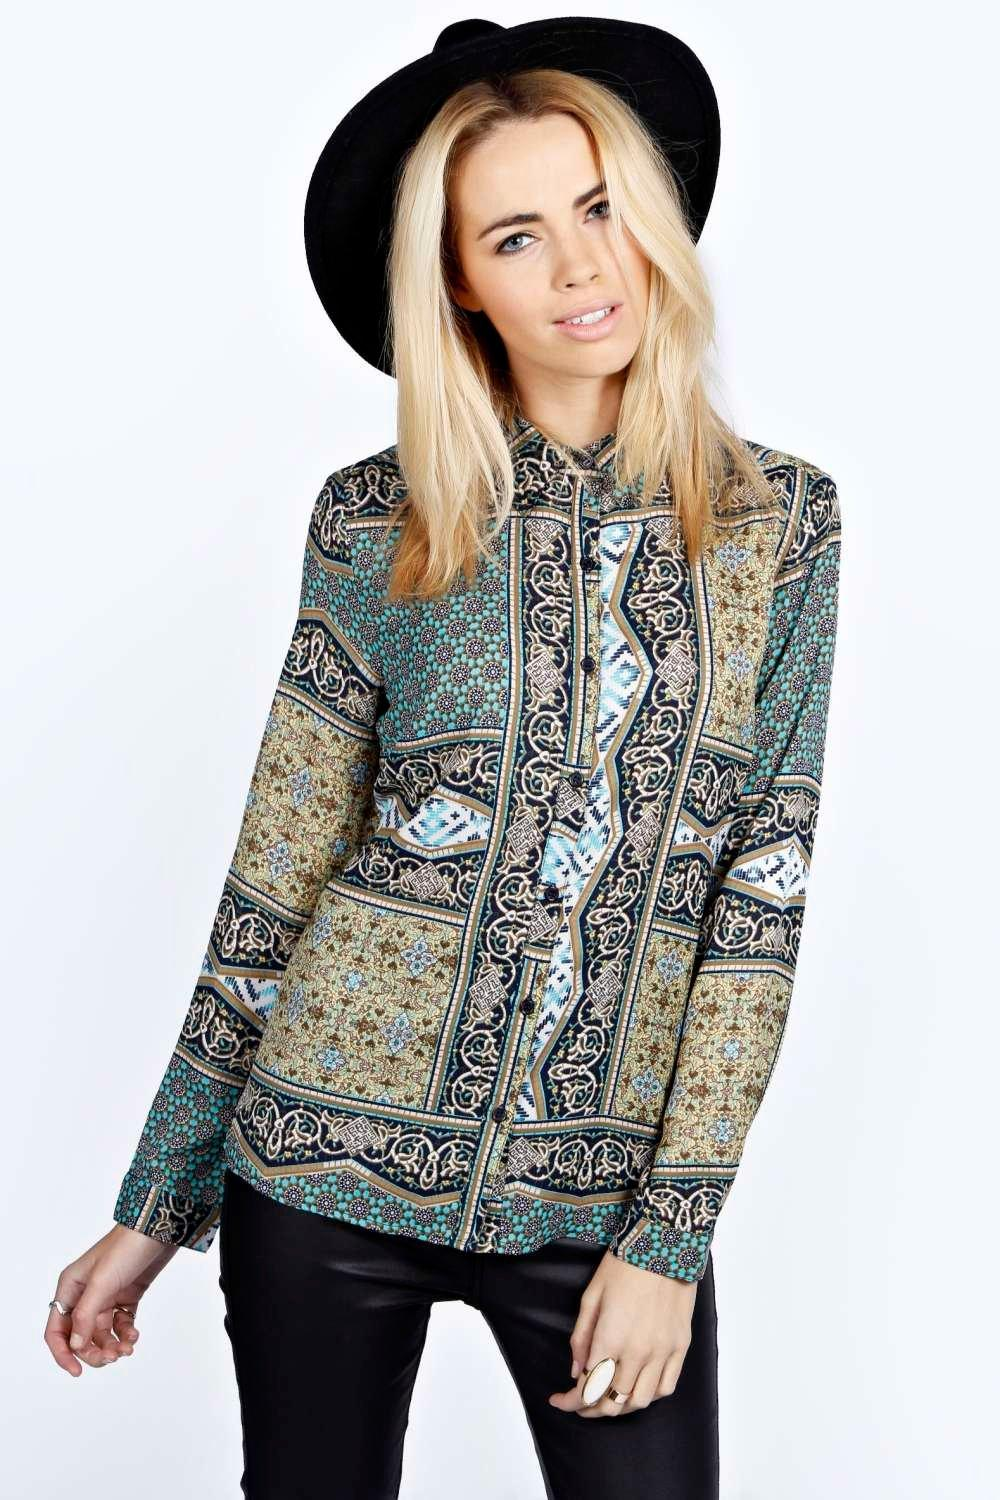 a15856aebf4 ... Print Long Sleeve Blouse. Hover to zoom